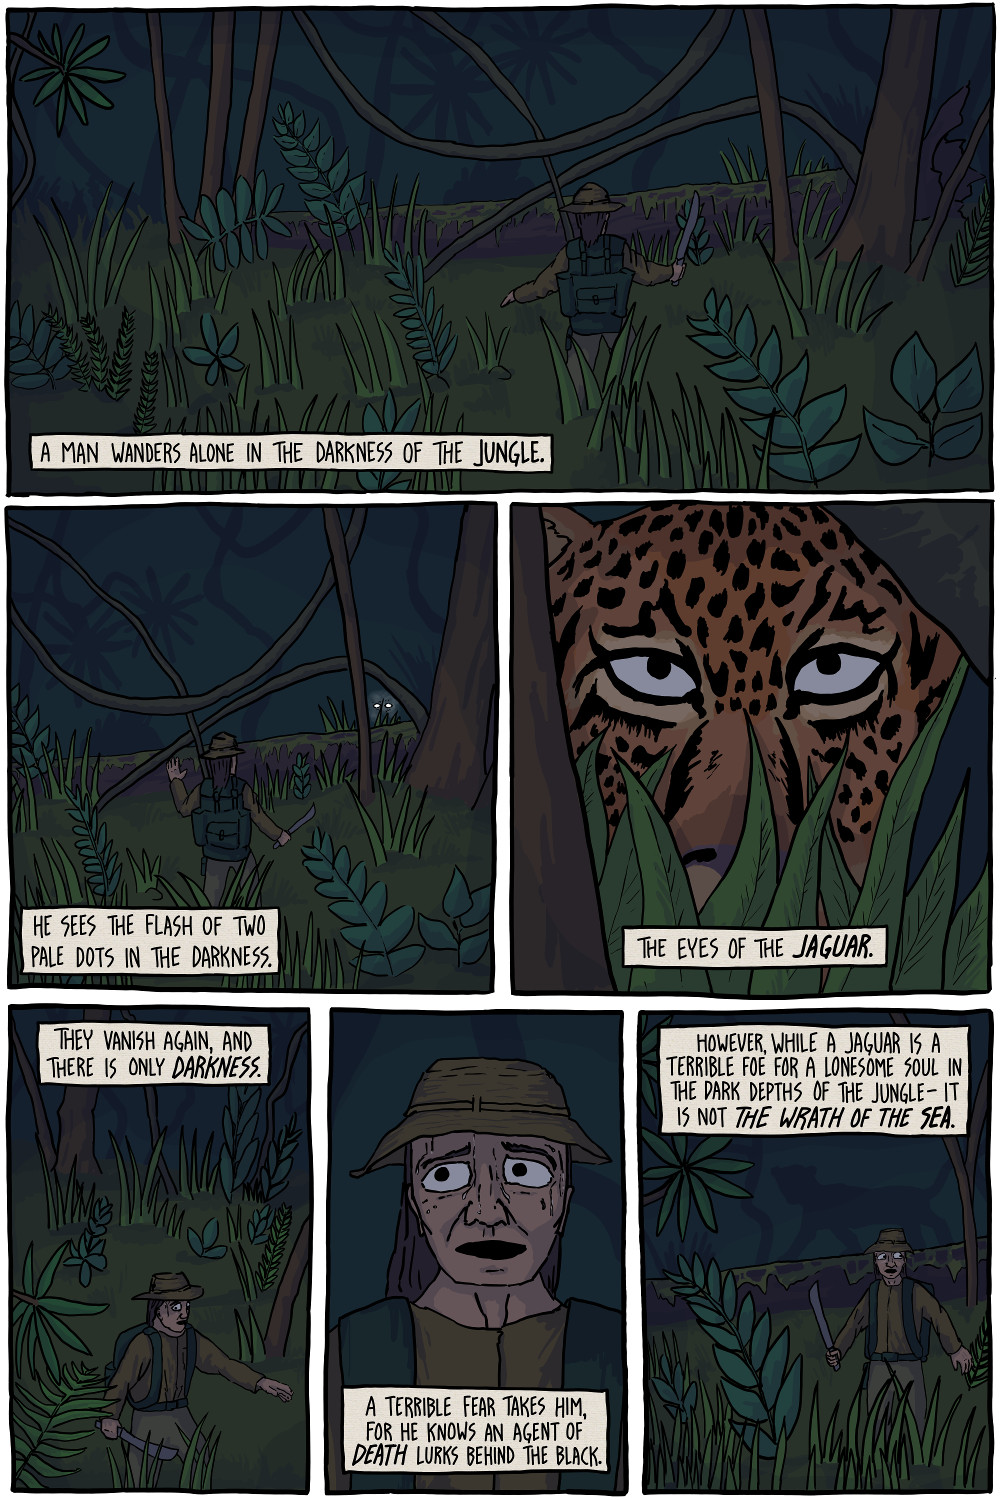 A man wanders alone in the darkness of the jungle.